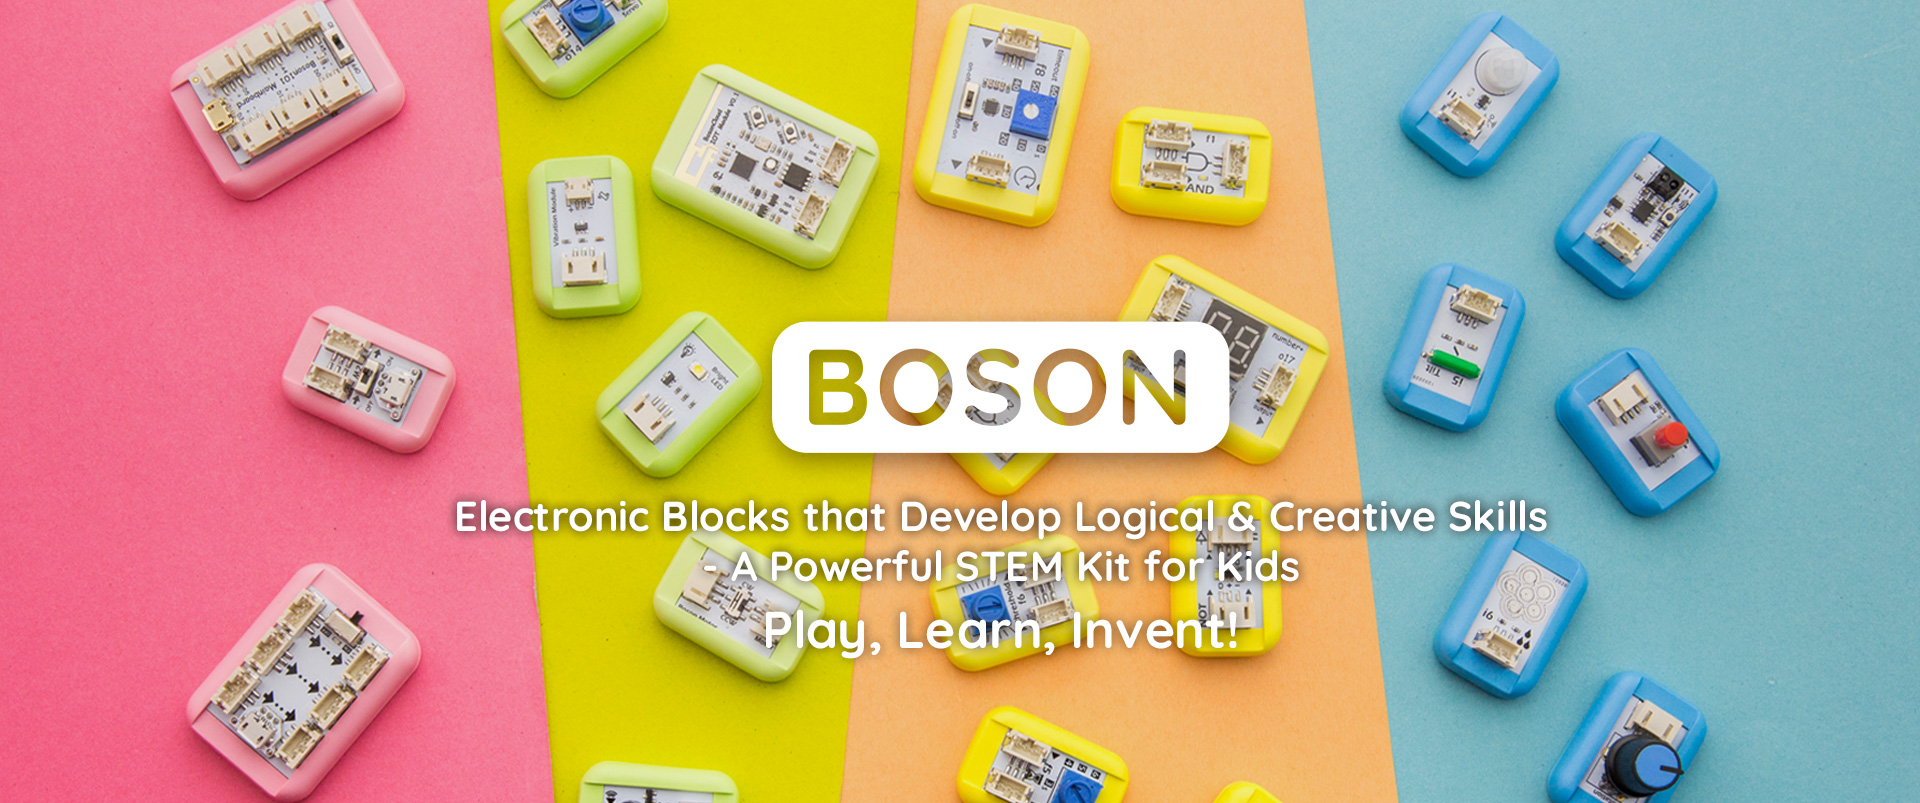 Boson Stem Educational Kit For Kids Coding Free Buy Electronics And Arduino Get It Shipped To Your Doorstep Dfrobot Is A Set Of Modularized Electronic Building Blocks